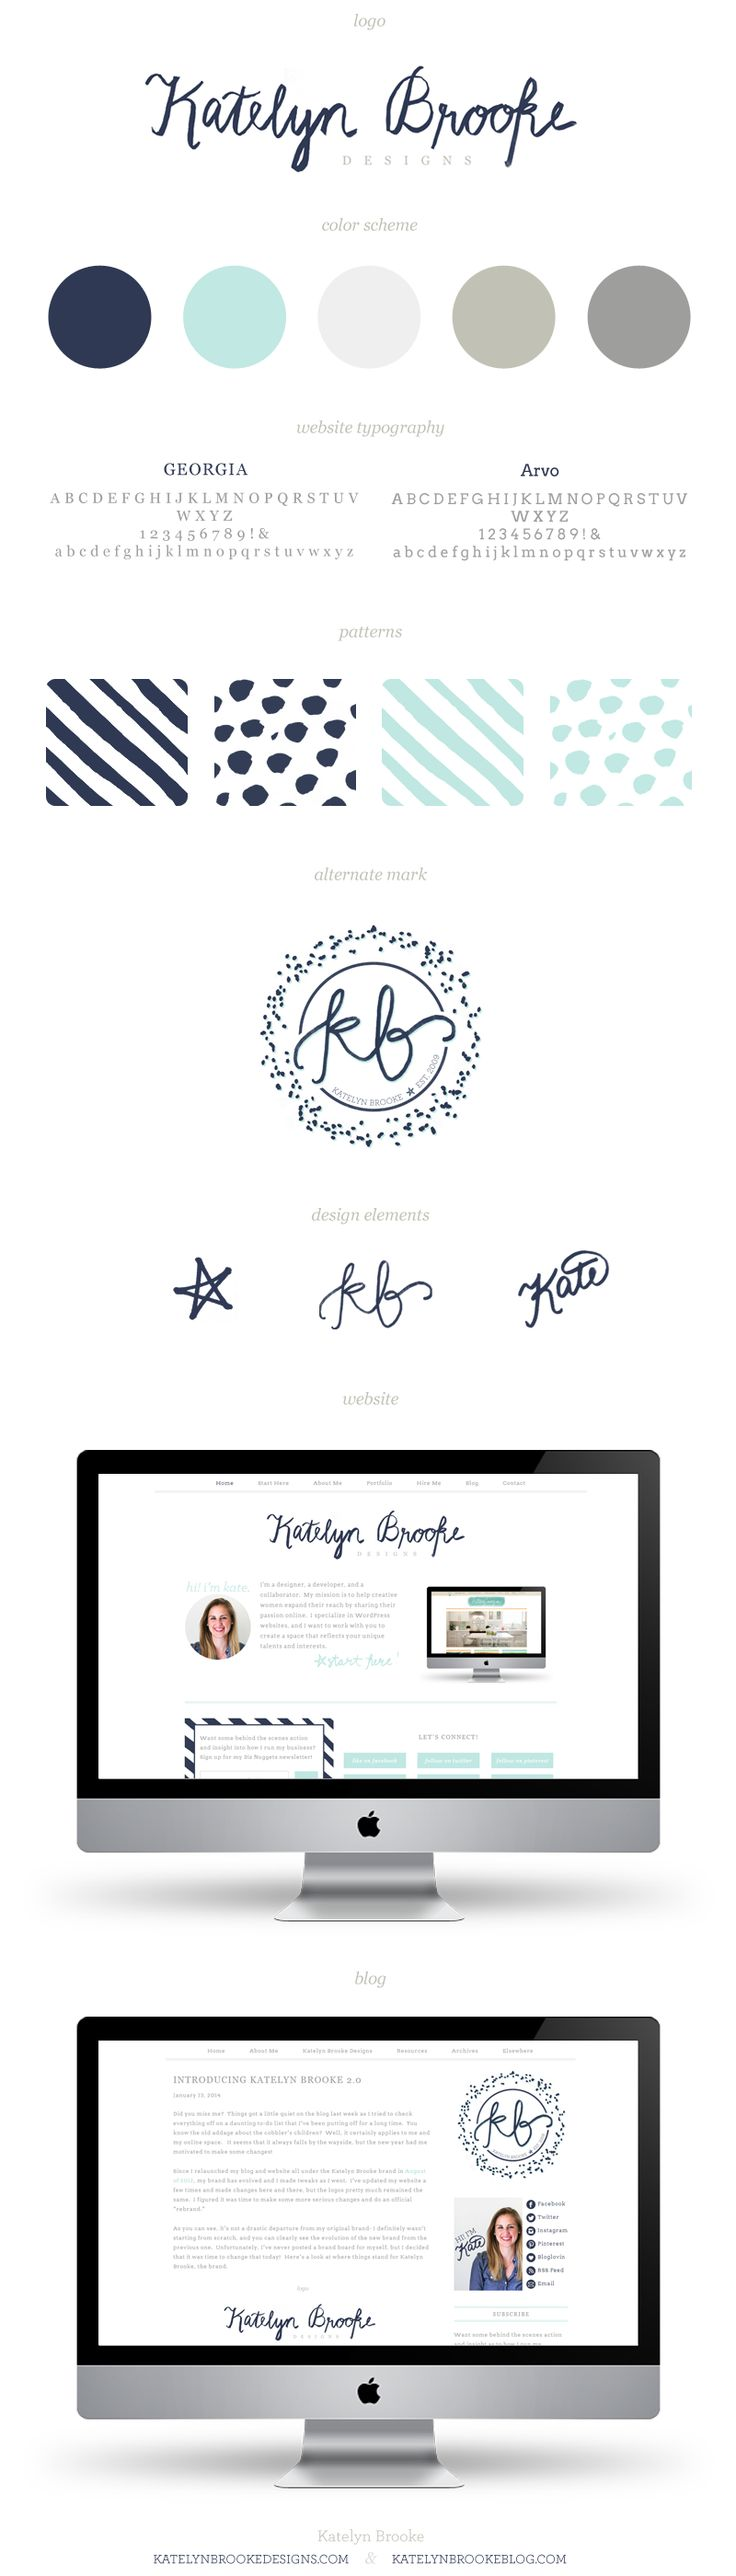 Katelyn Brooke 2.0 brand and site design || katelynbrookeblog.com